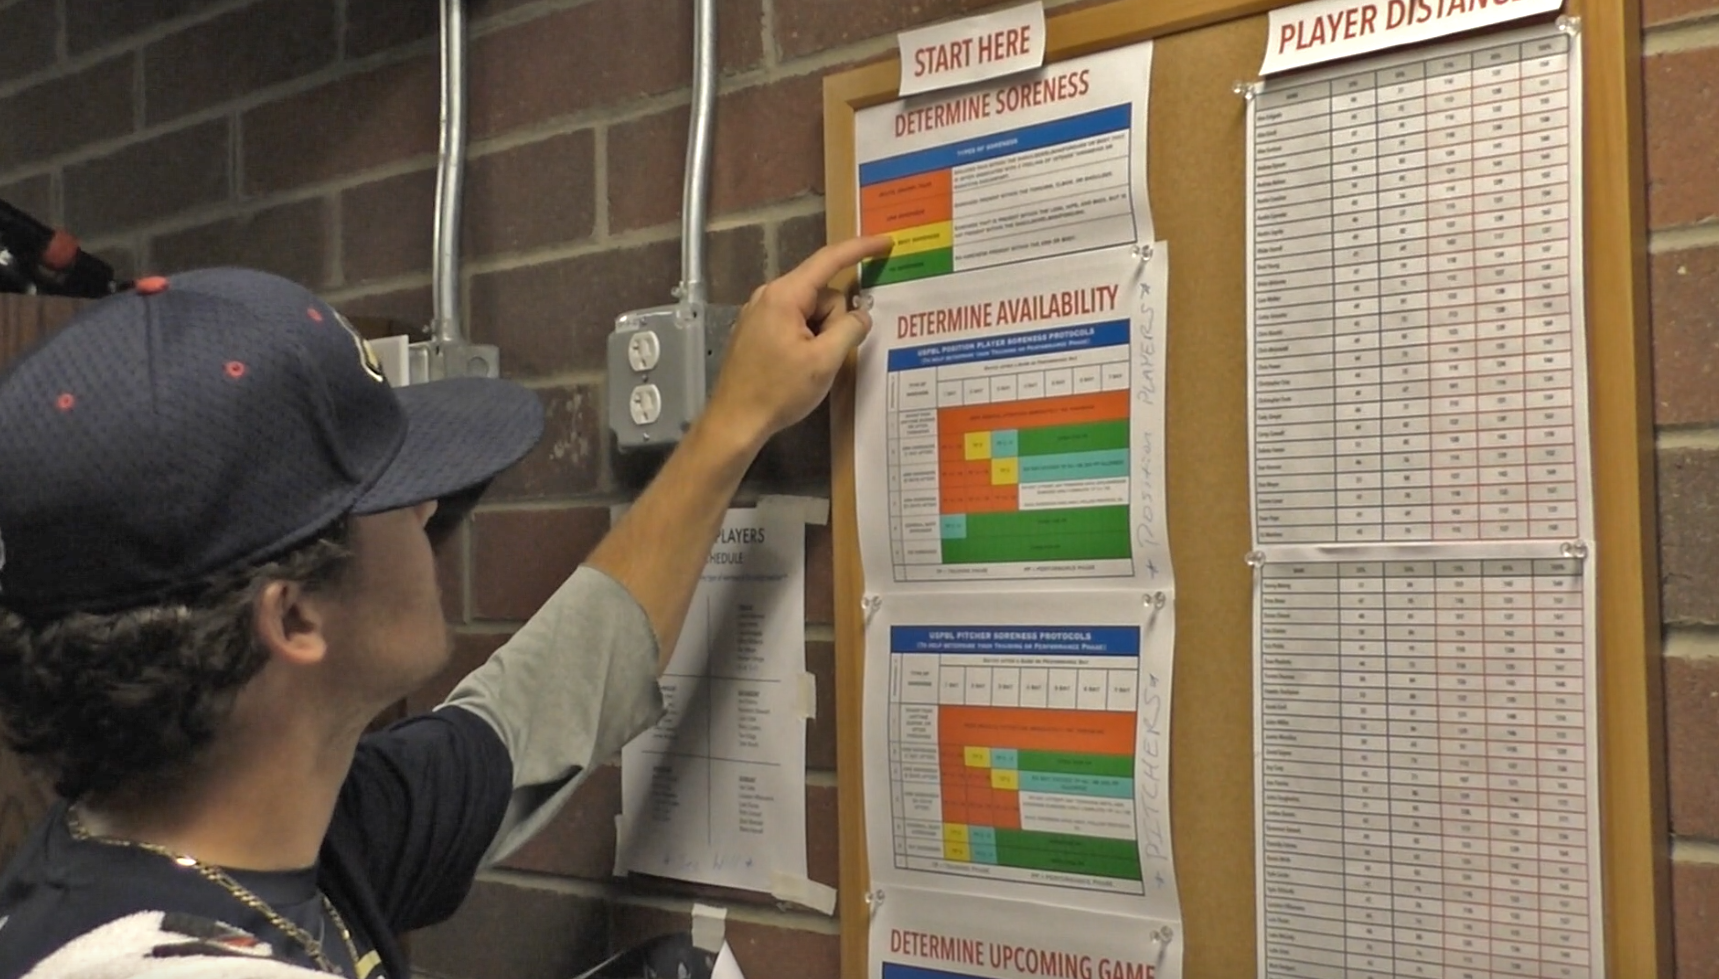 Chapter 2: Planning Your Throwing Schedule - Understand How Often, When, and How Much you should be throwing throughout the week.